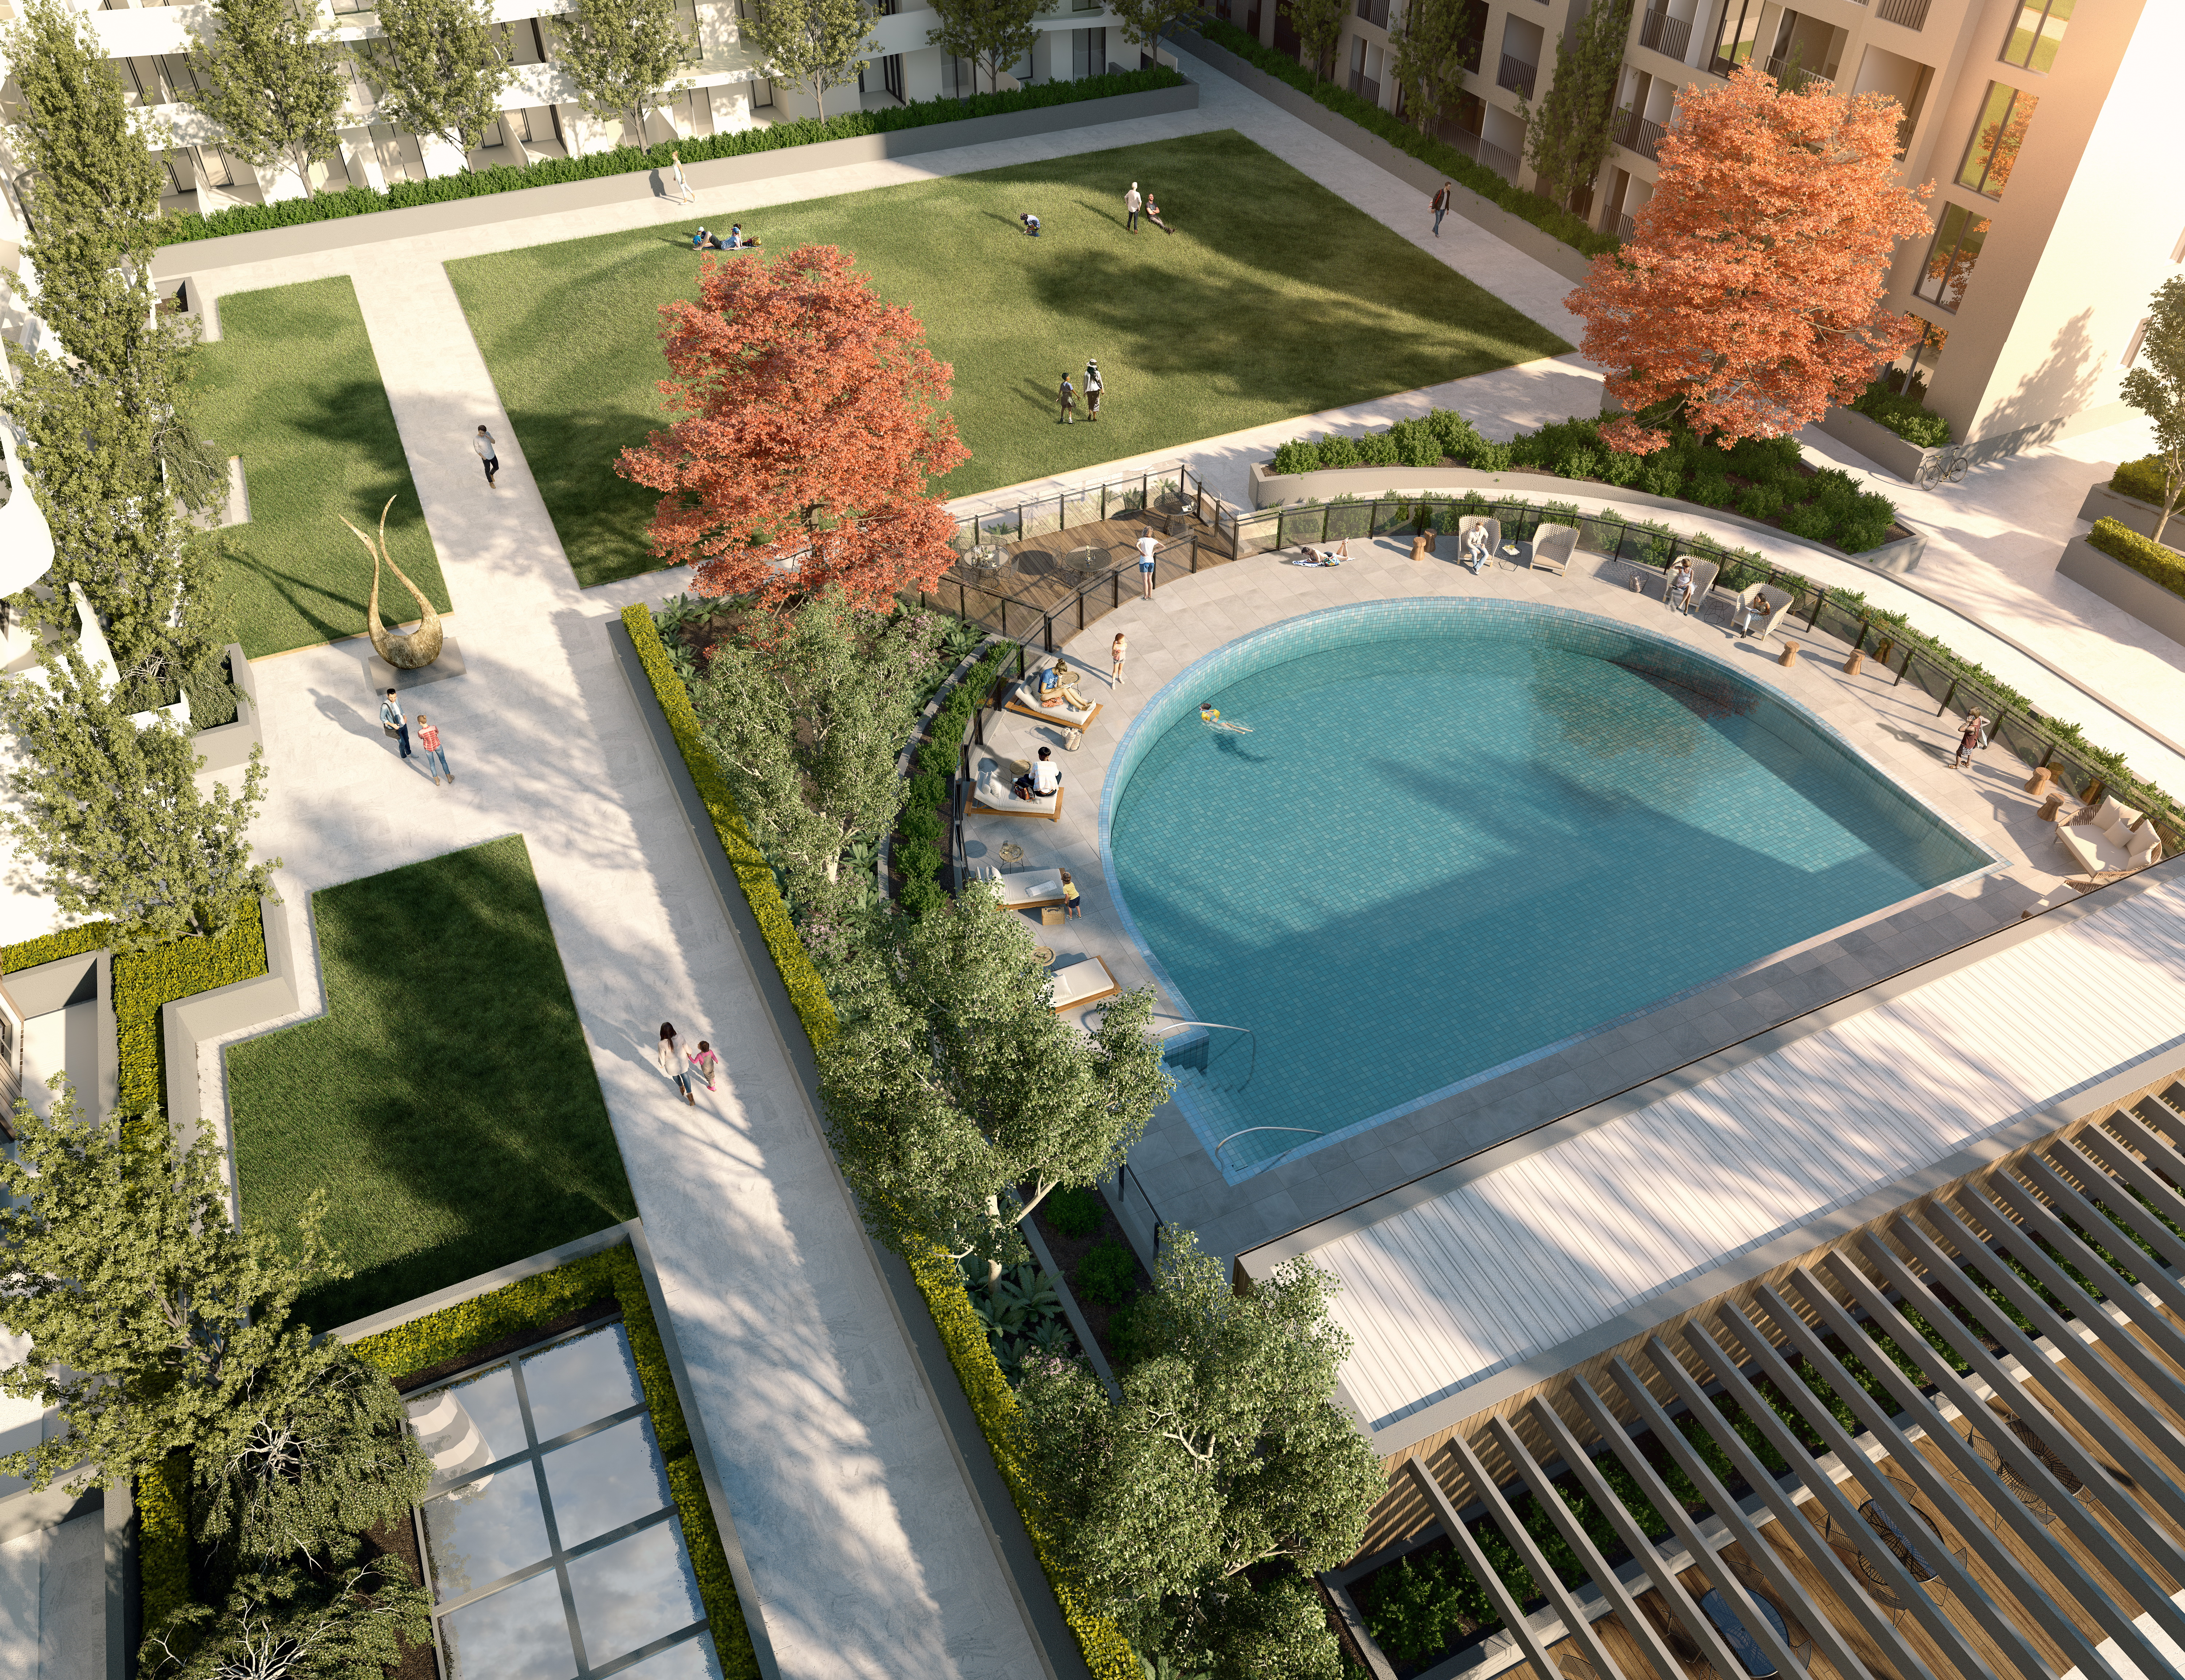 M-city apartment developments Melbourne off the plan Monash swimming pool